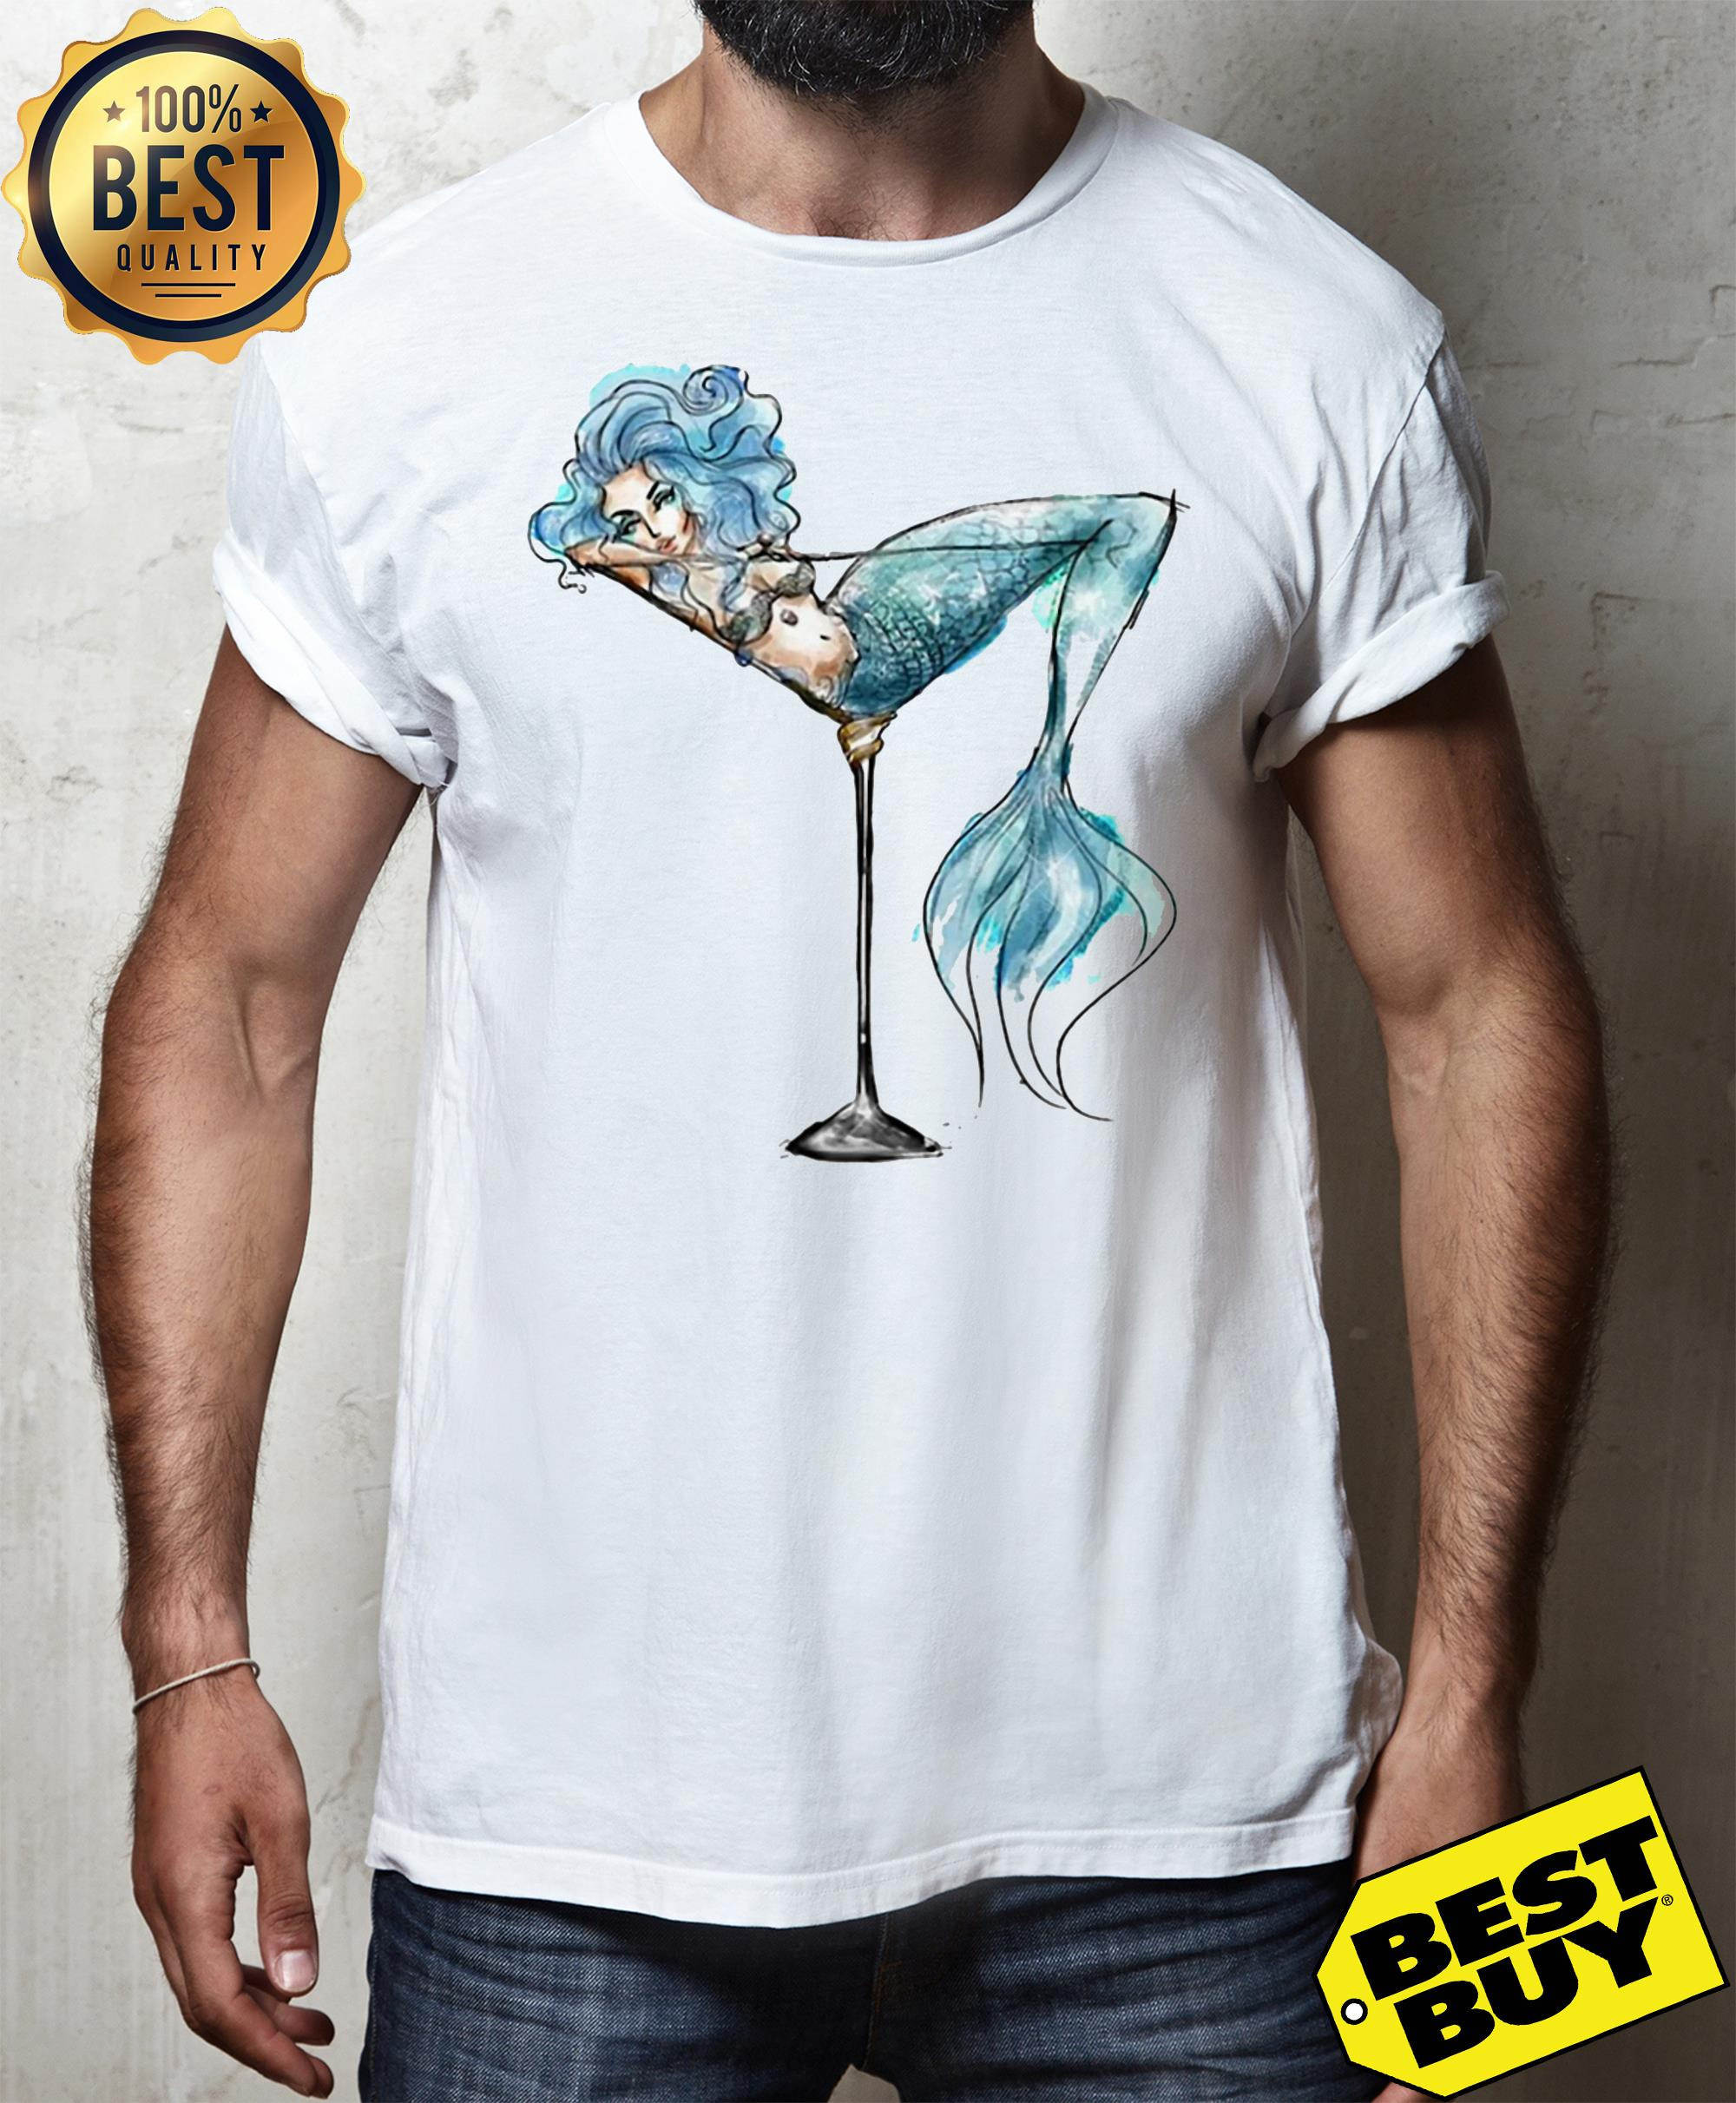 Mermaid and cocktail glass shirt